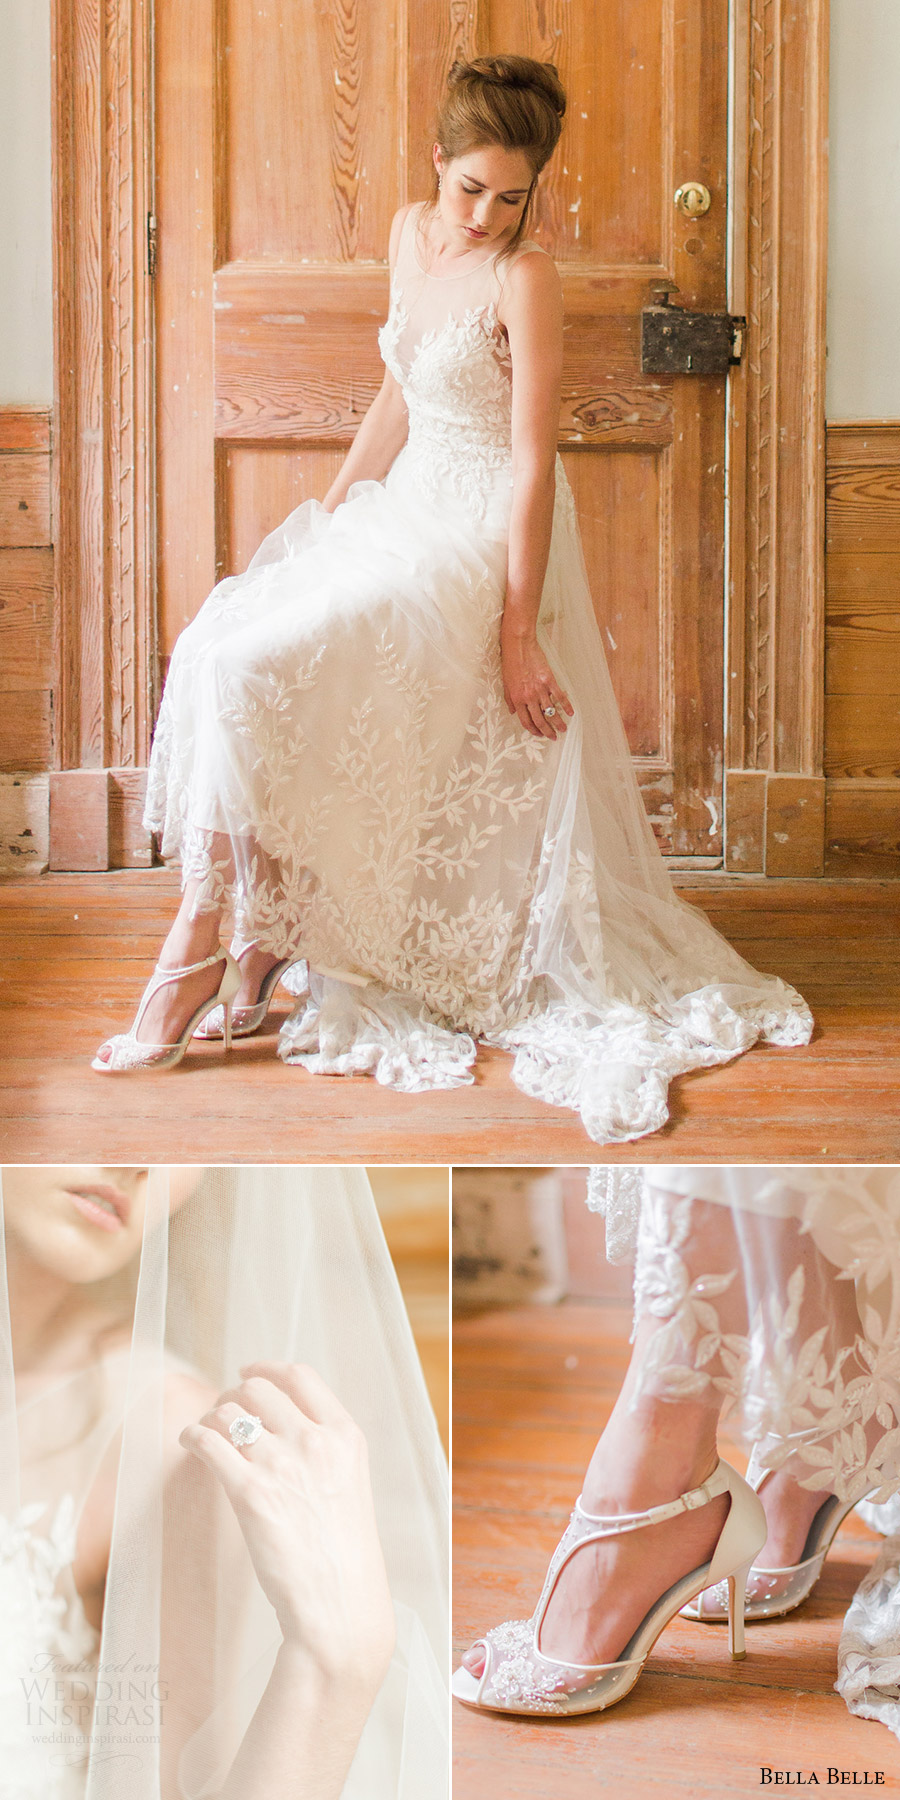 bella belle shoes 2016 paloma hand beaded peeptoe wedding shoes rachel may photography